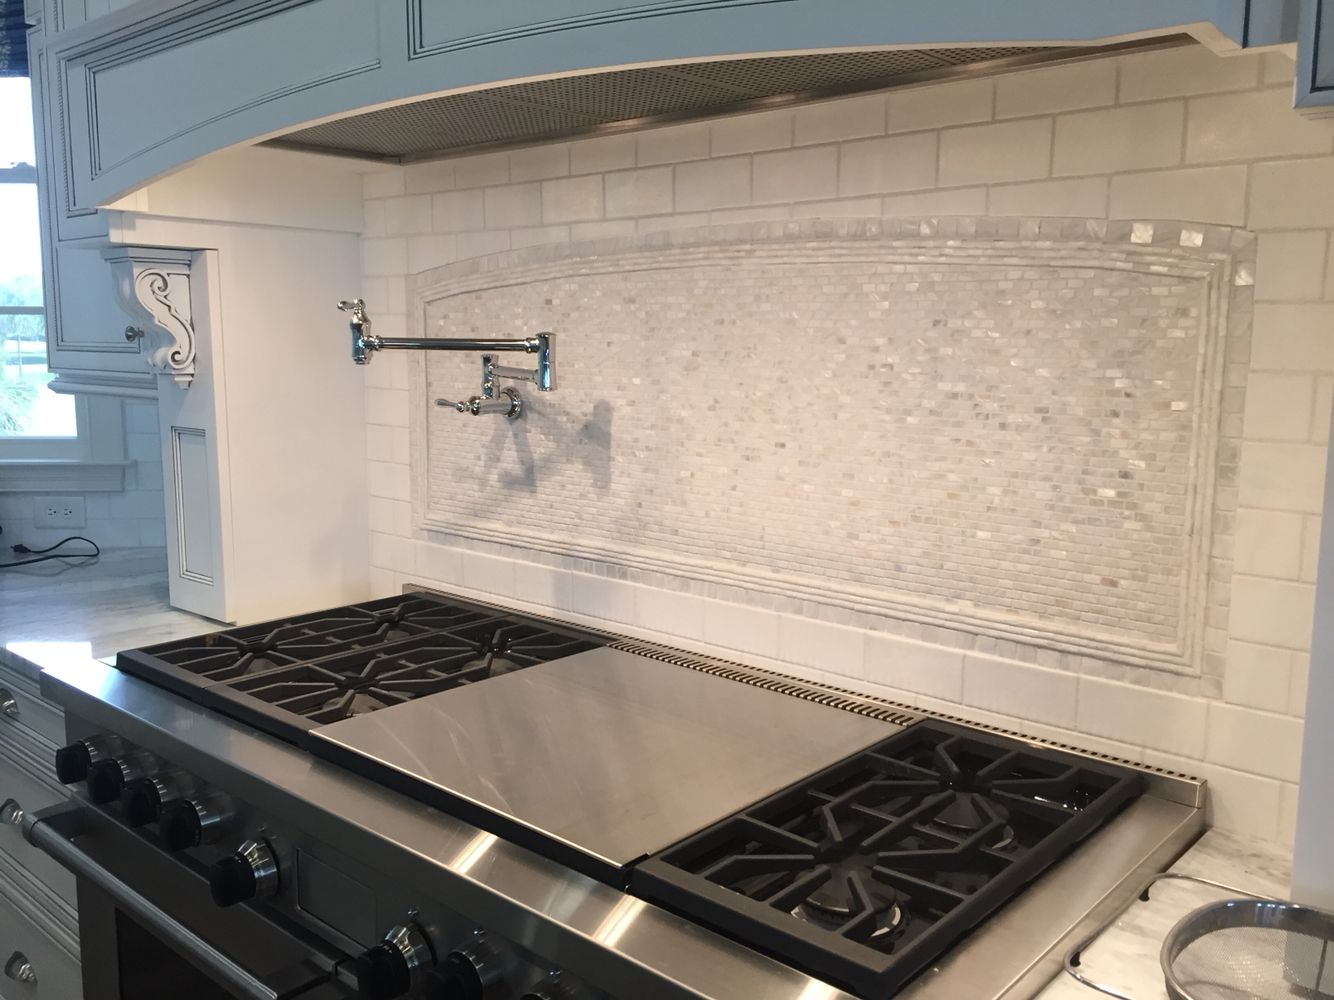 This Is It Change Nothing Mother Of Pearl Backsplash And Subway